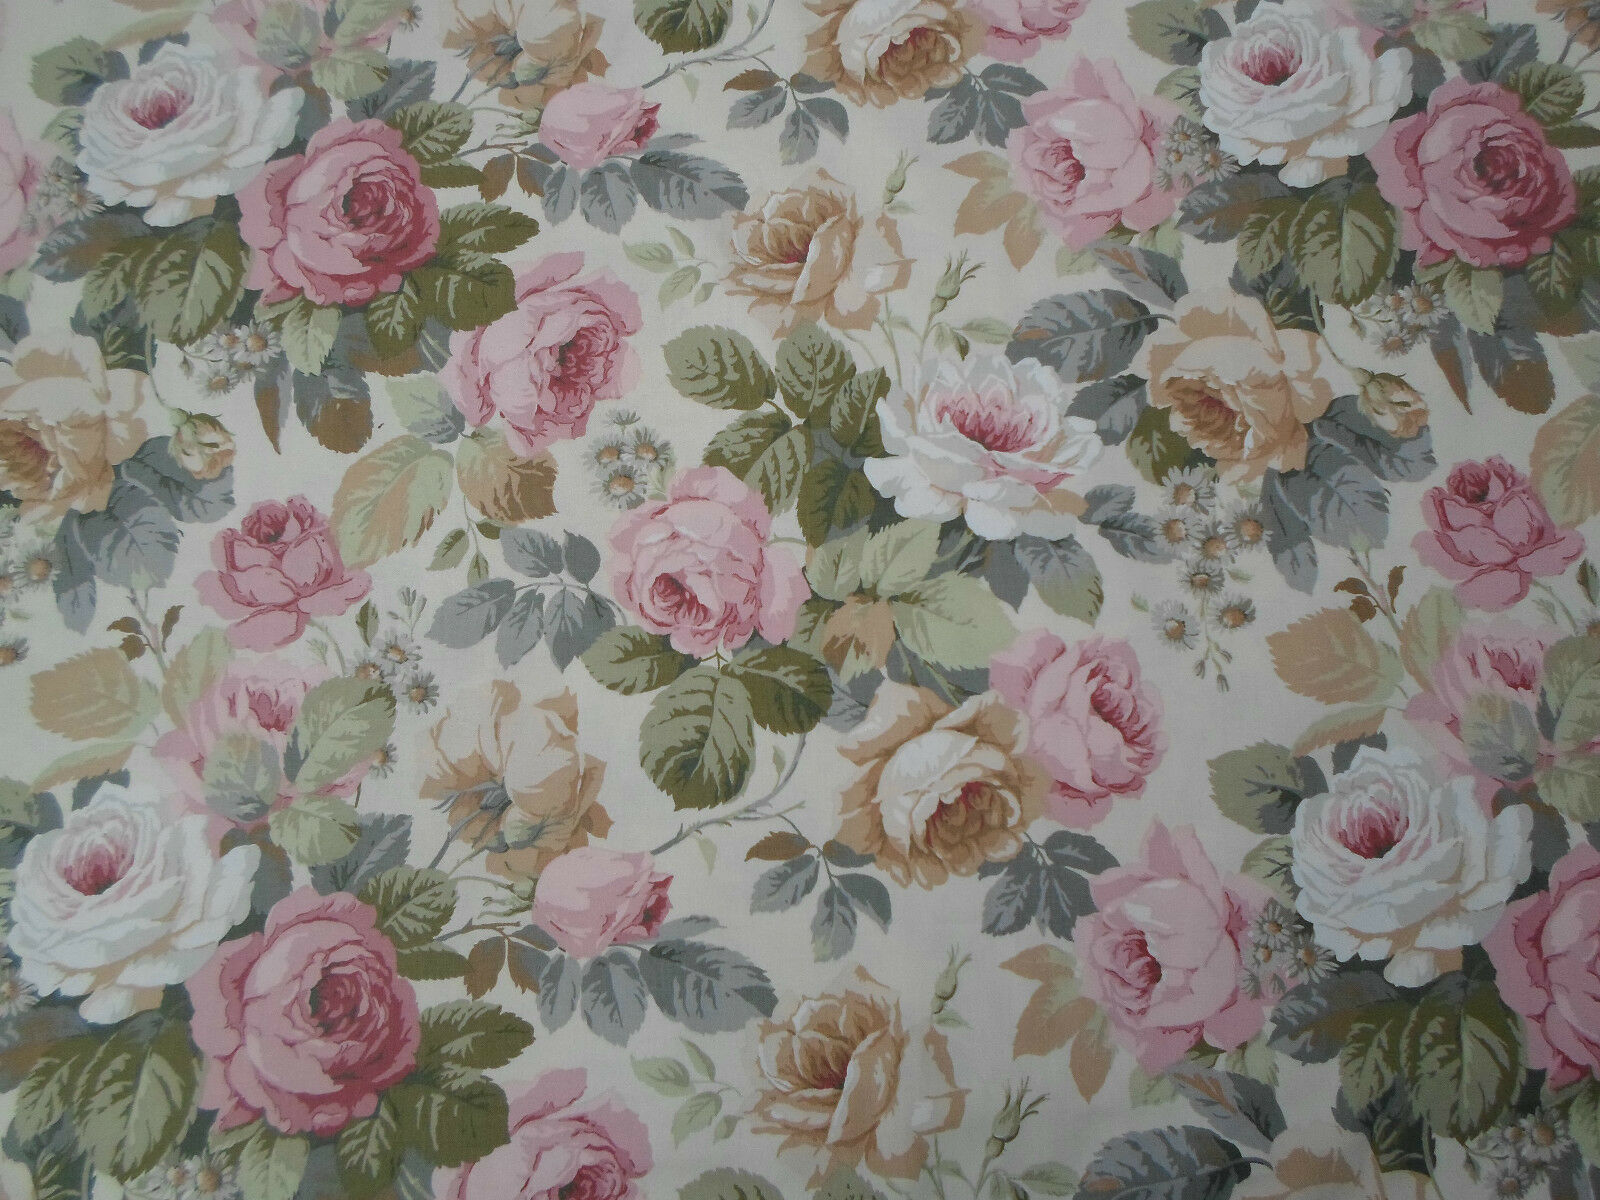 Sanderson Curtain Fabric  'Chelsea' 'Chelsea' 'Chelsea' 3.4 METRES DCN1C2202 Traditional Floral 4ae5d7